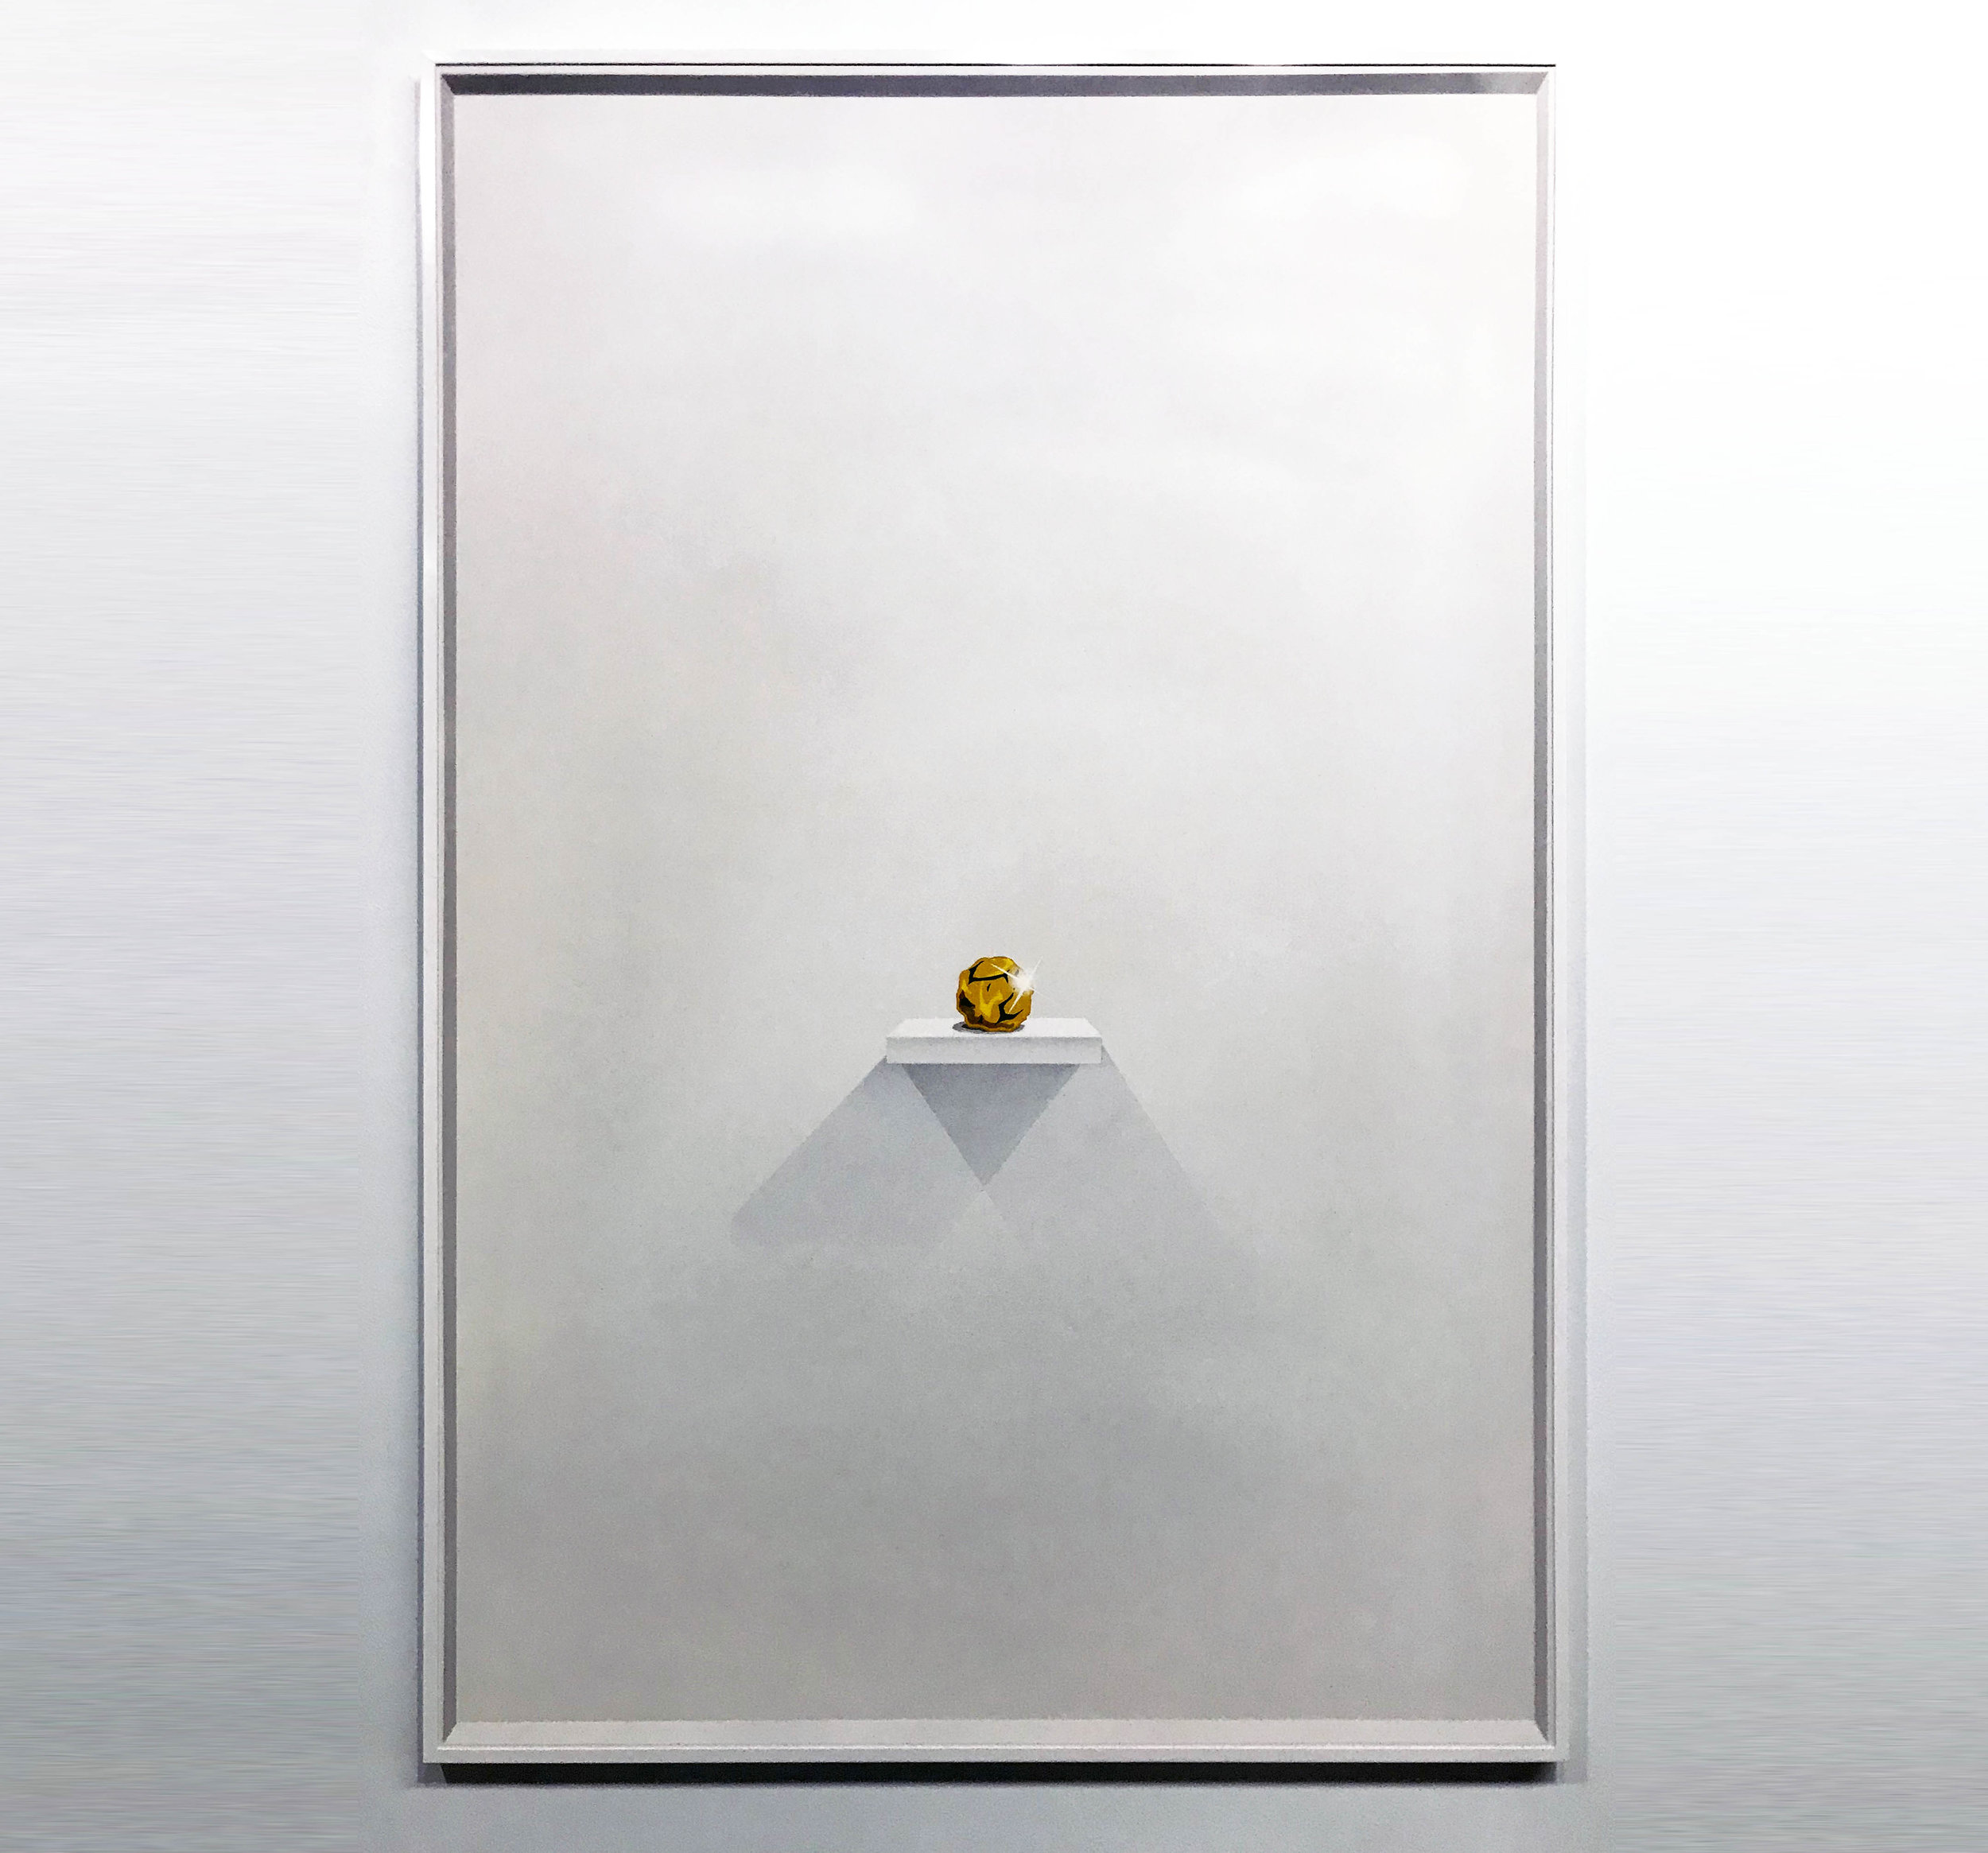 """E.LEE - """"Gold Nugget on a Shelf"""" - 32"""" x 48"""" Spray paint and acrylic on aluminum panel"""